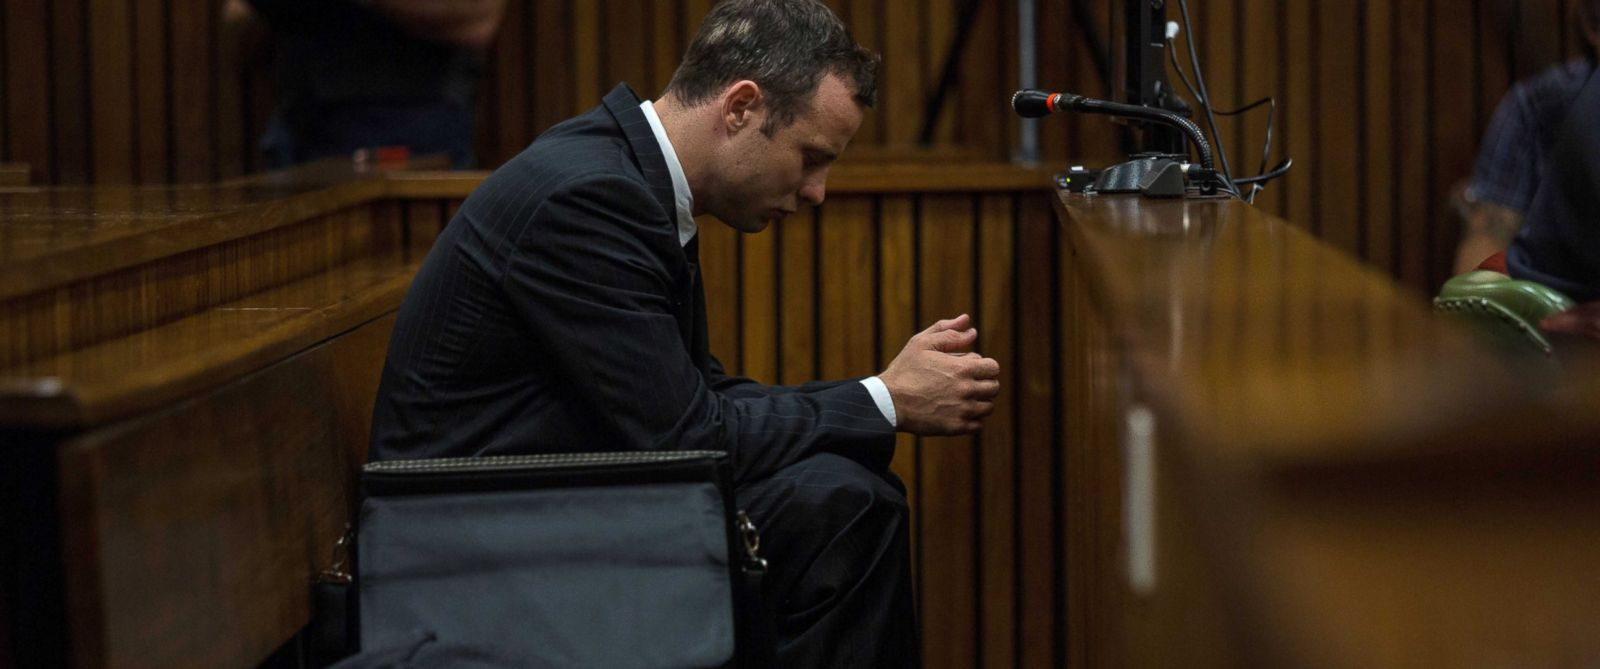 PHOTO: Oscar Pistorius sits in the dock as he listens to cross questioning about the events surrounding the 2013 shooting death of his girlfriend Reeva Steenkamp in Pretoria, South Africa, Tuesday, March 11, 2014.